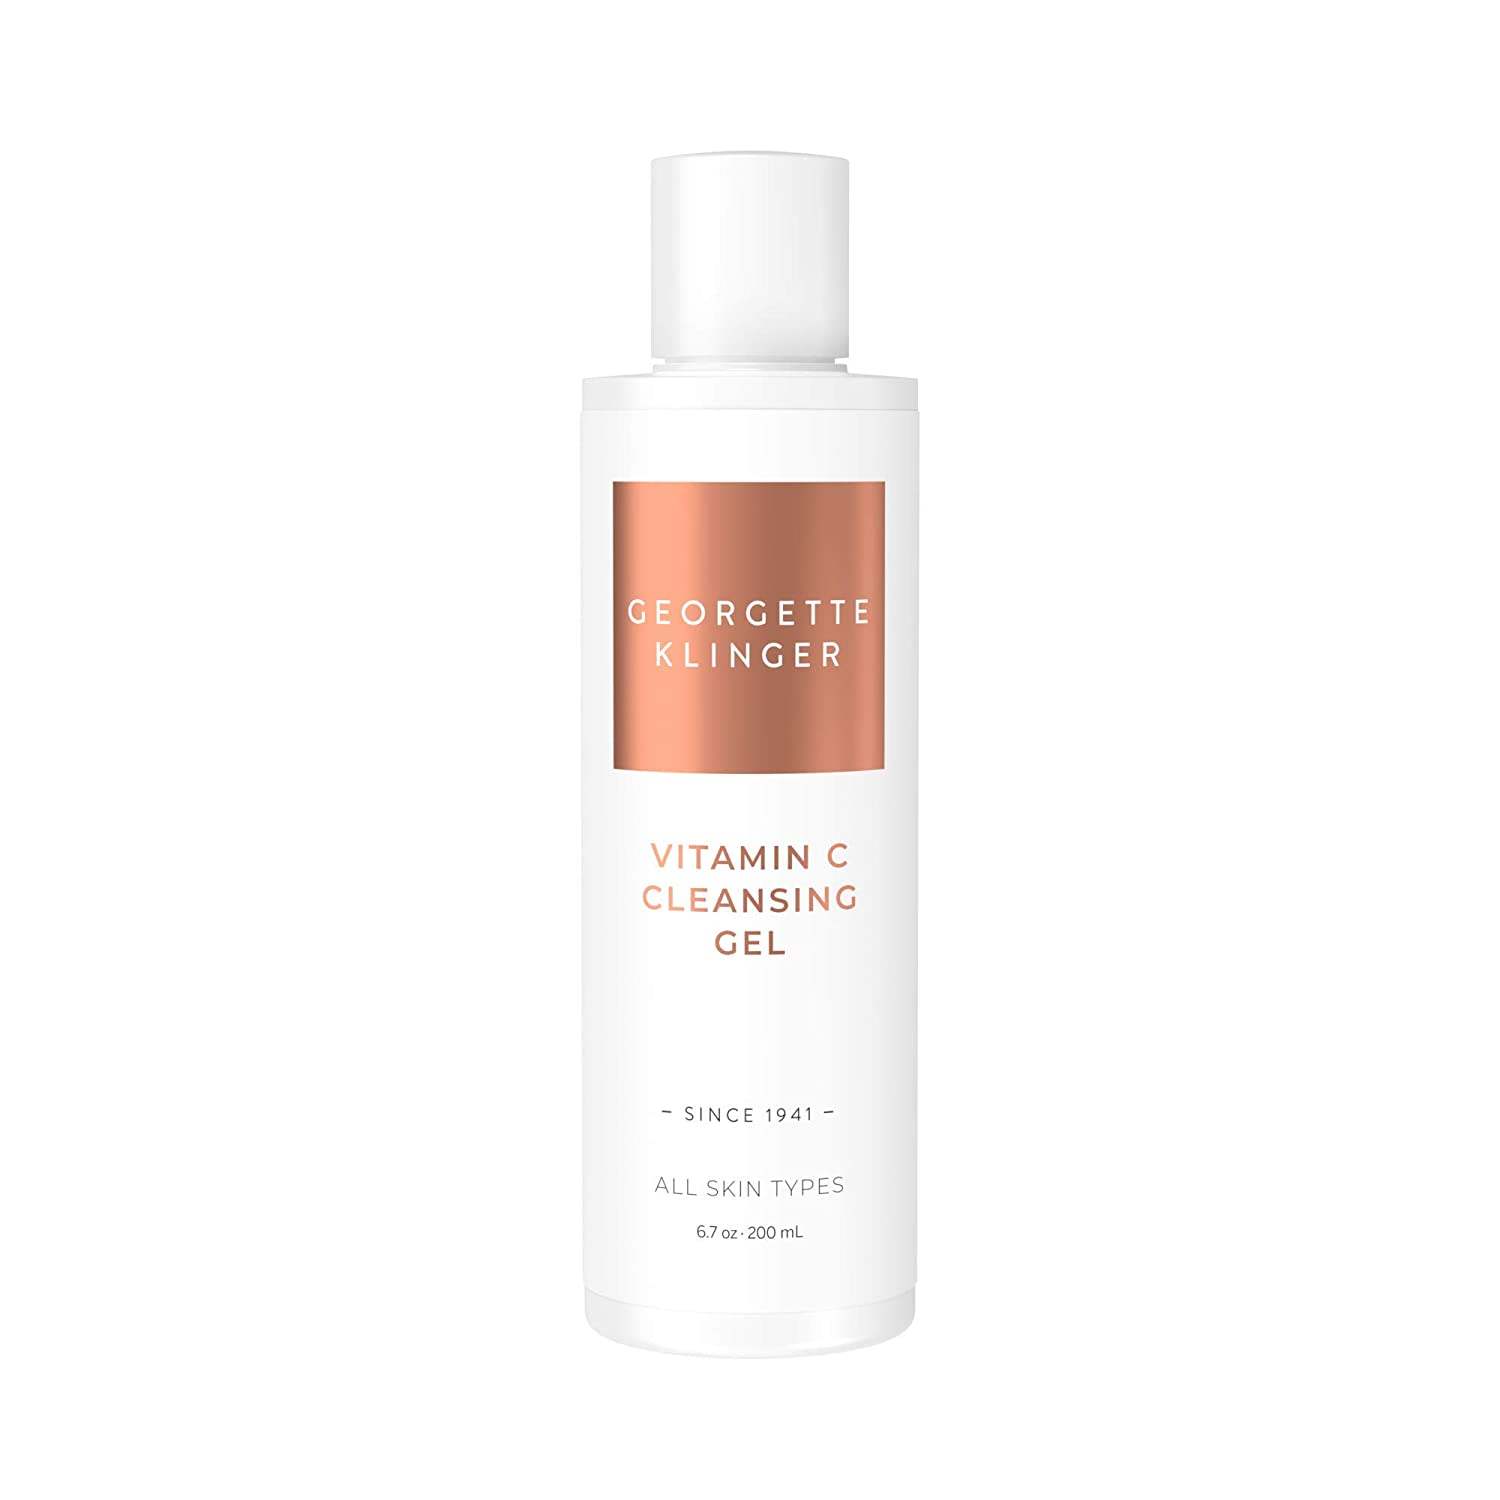 Vitamin C Cleansing Gel by Georgette Klinger – Non-Foaming Face Wash & Anti-Aging Facial Cleanser for All Skin Types to Clarify, Brighten & Reduce Dark Spots with Kakadu Plum & Natural Citrus Extracts